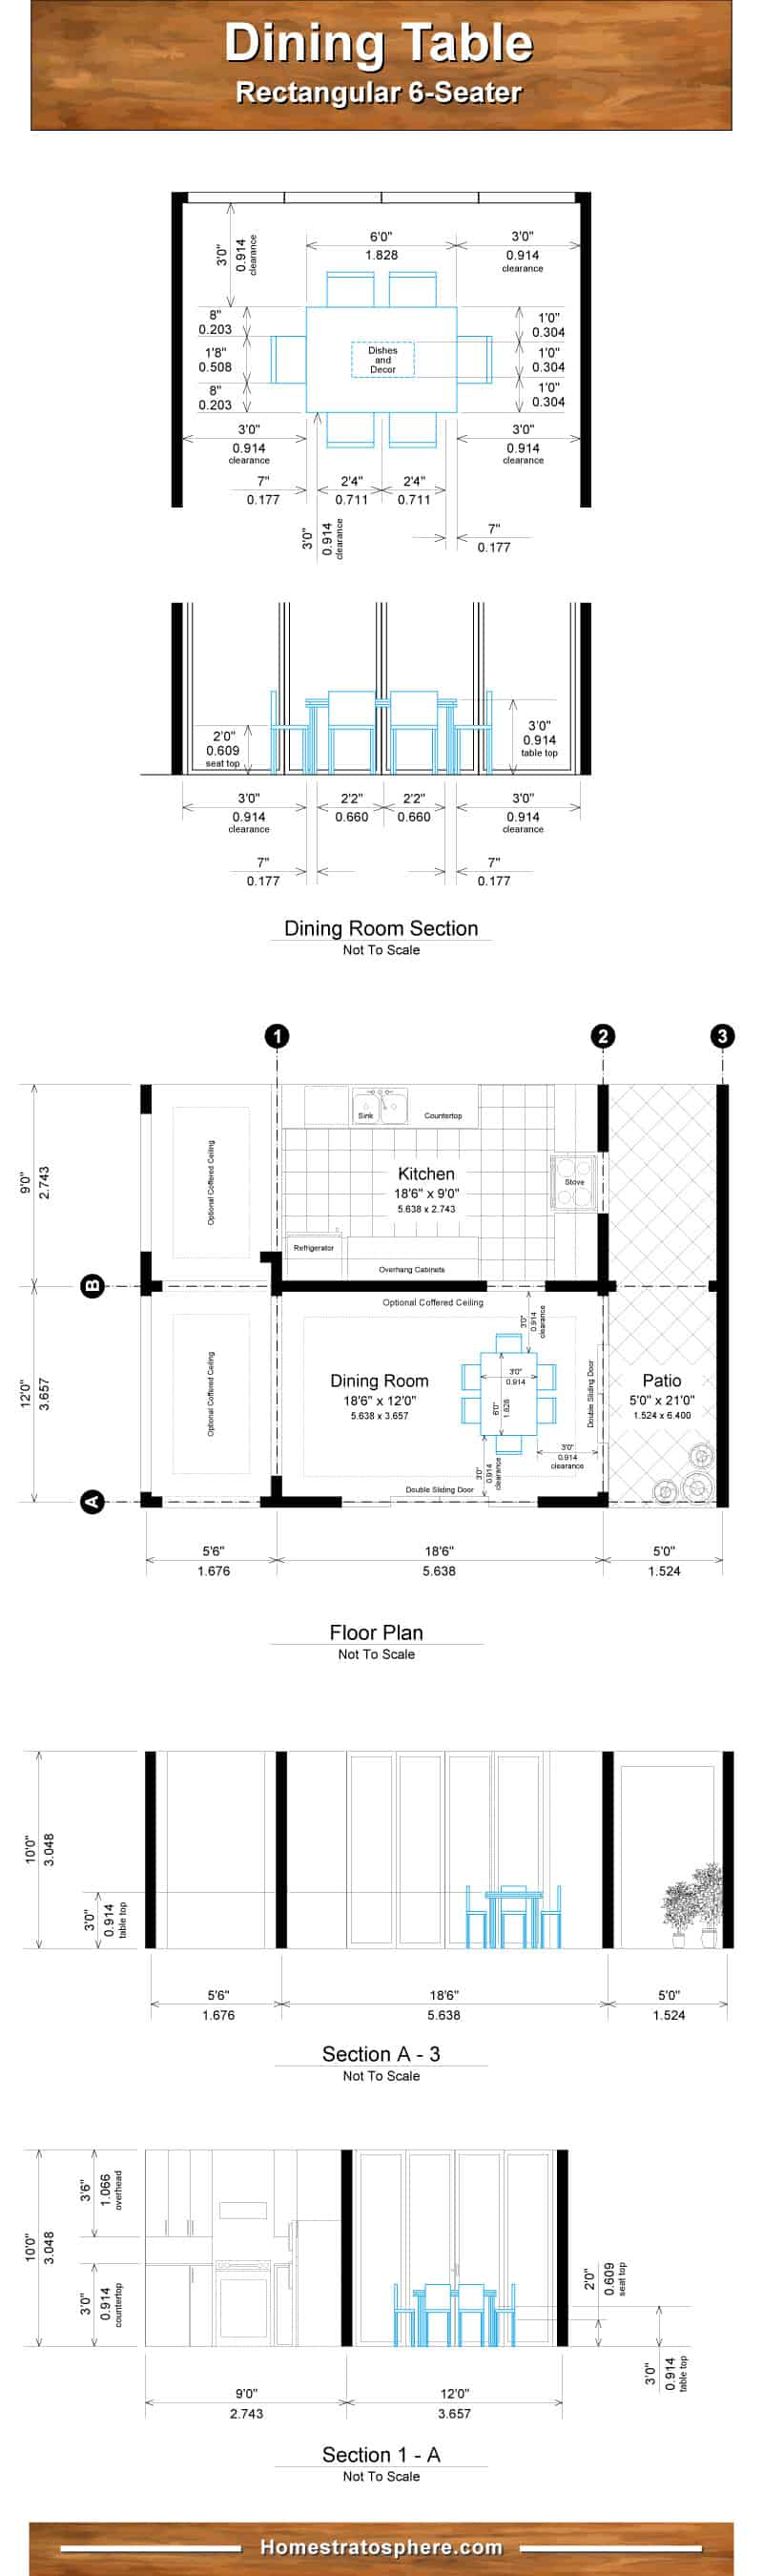 Diagram chart setting out dining room and table dimensions for 6 people